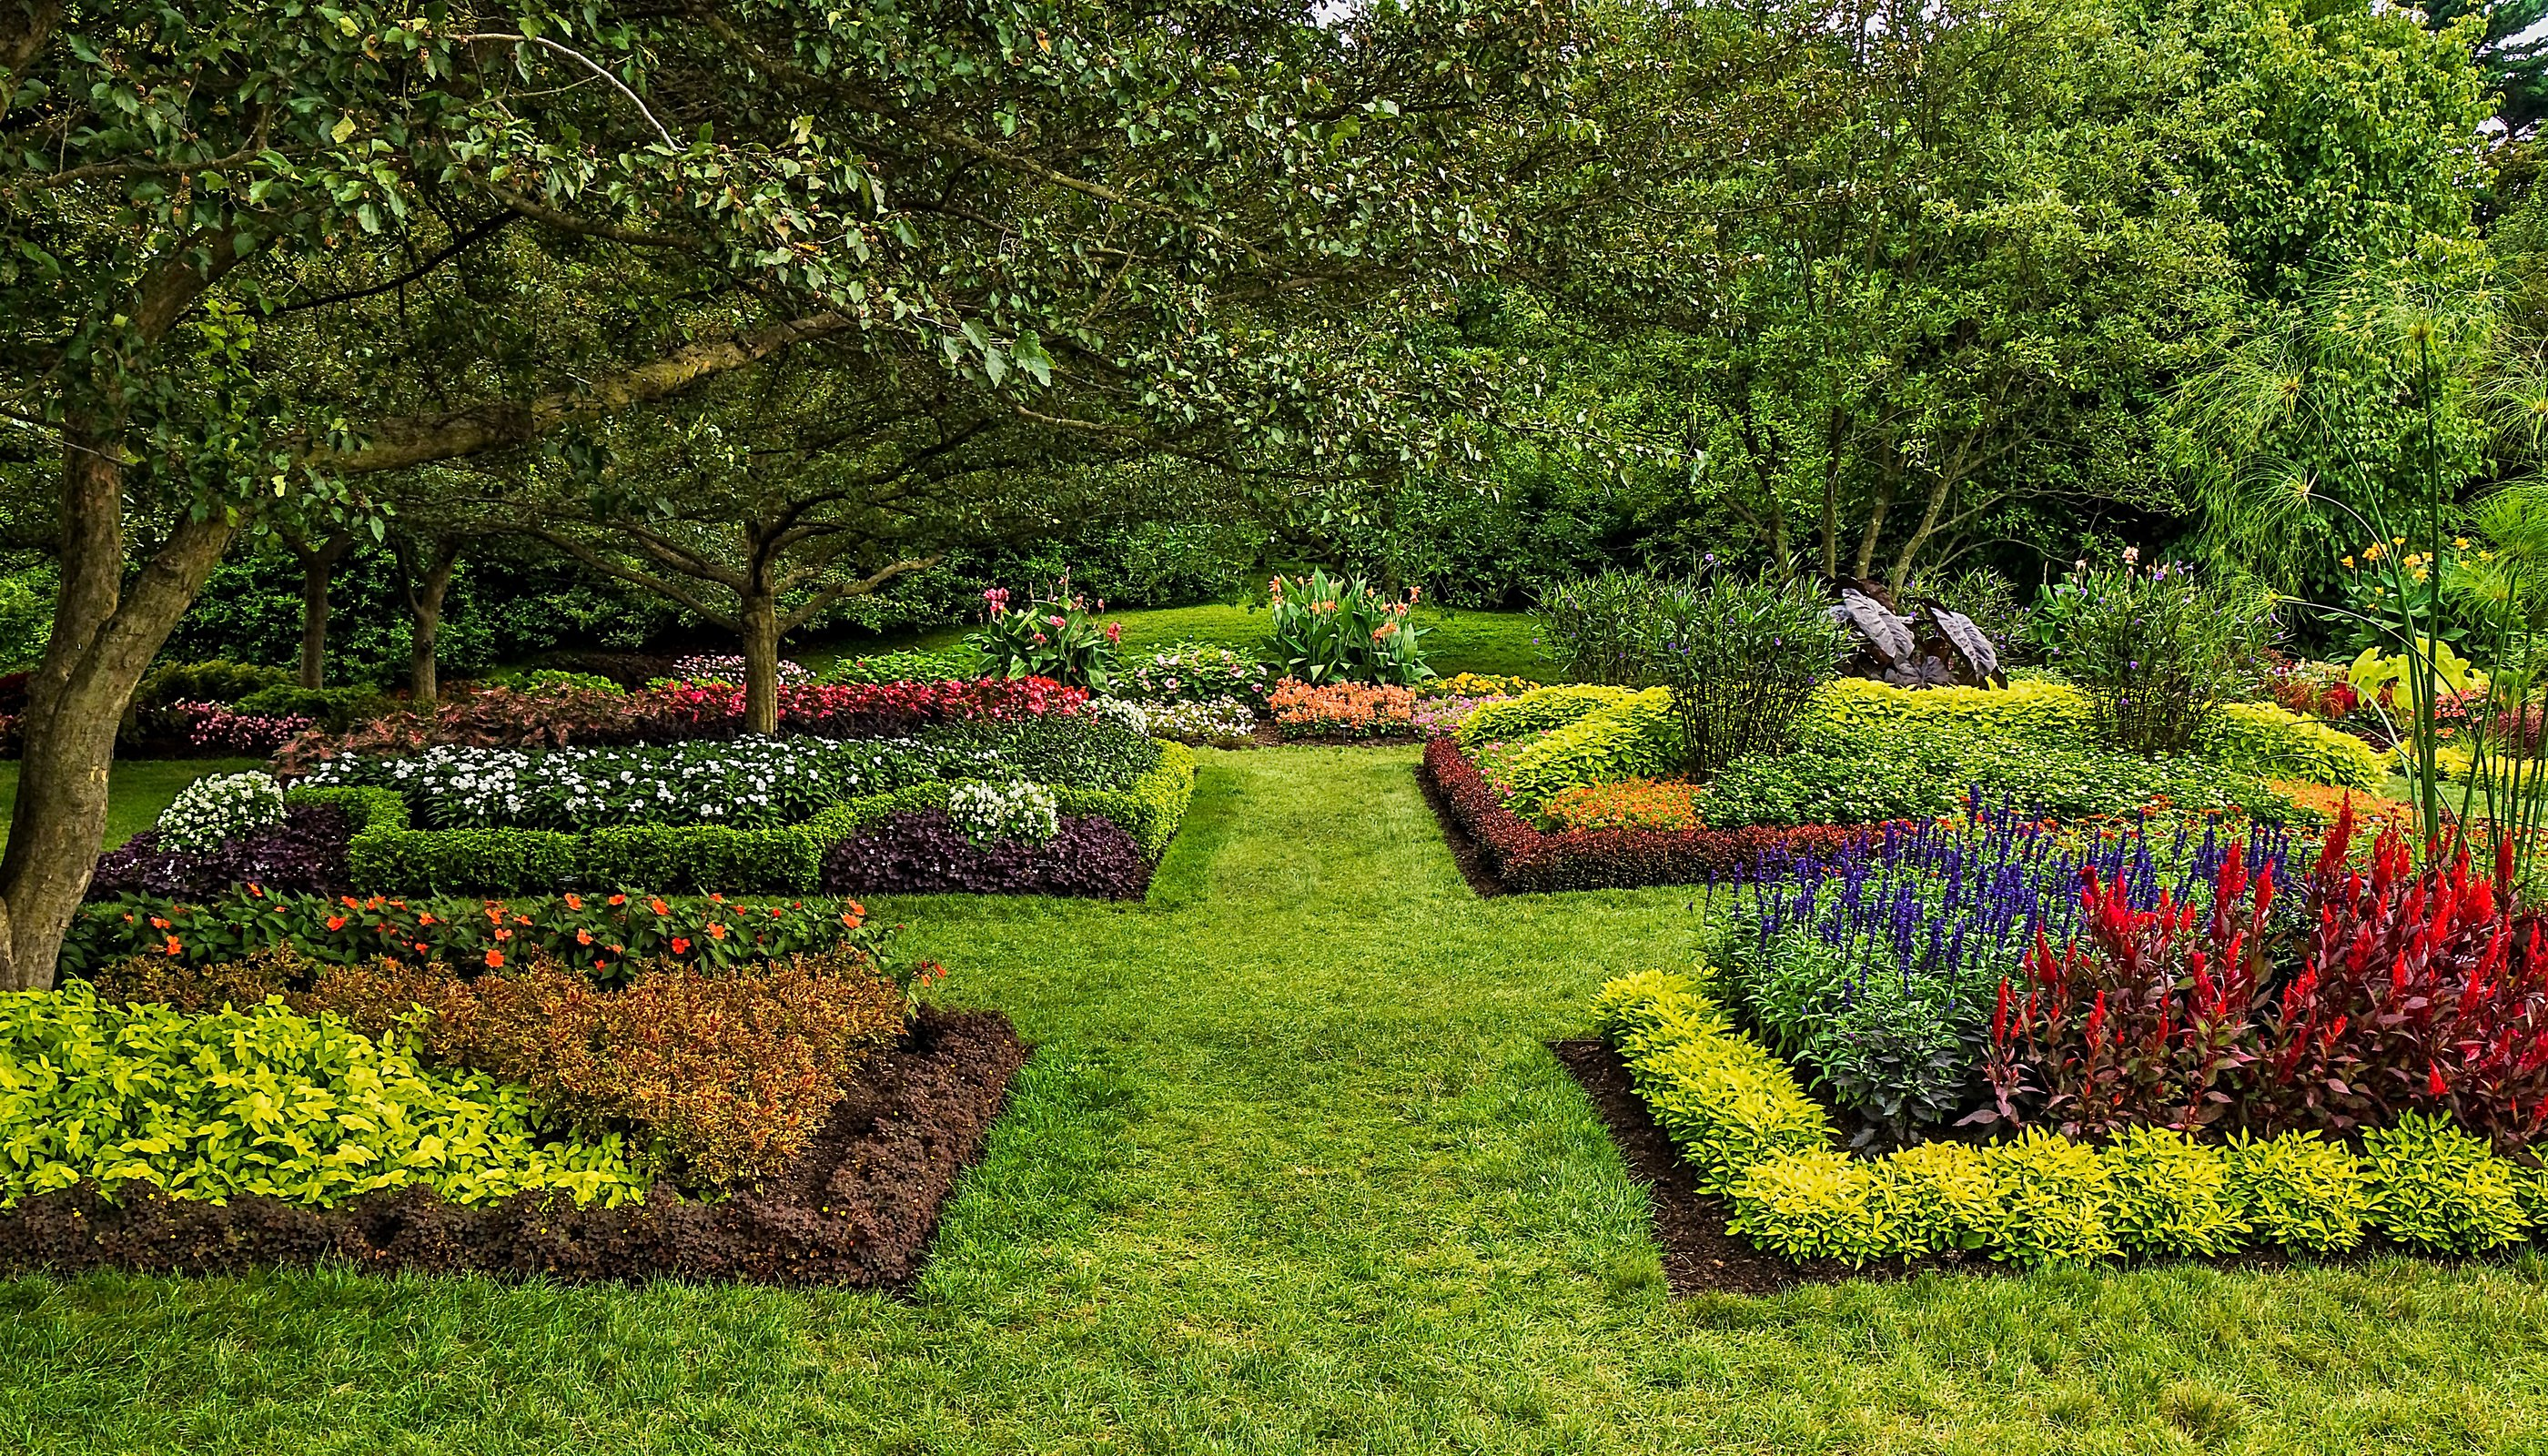 garden design with usa garden longwood kennett square lawn shrubs grass nature with landscaping rocks ideas